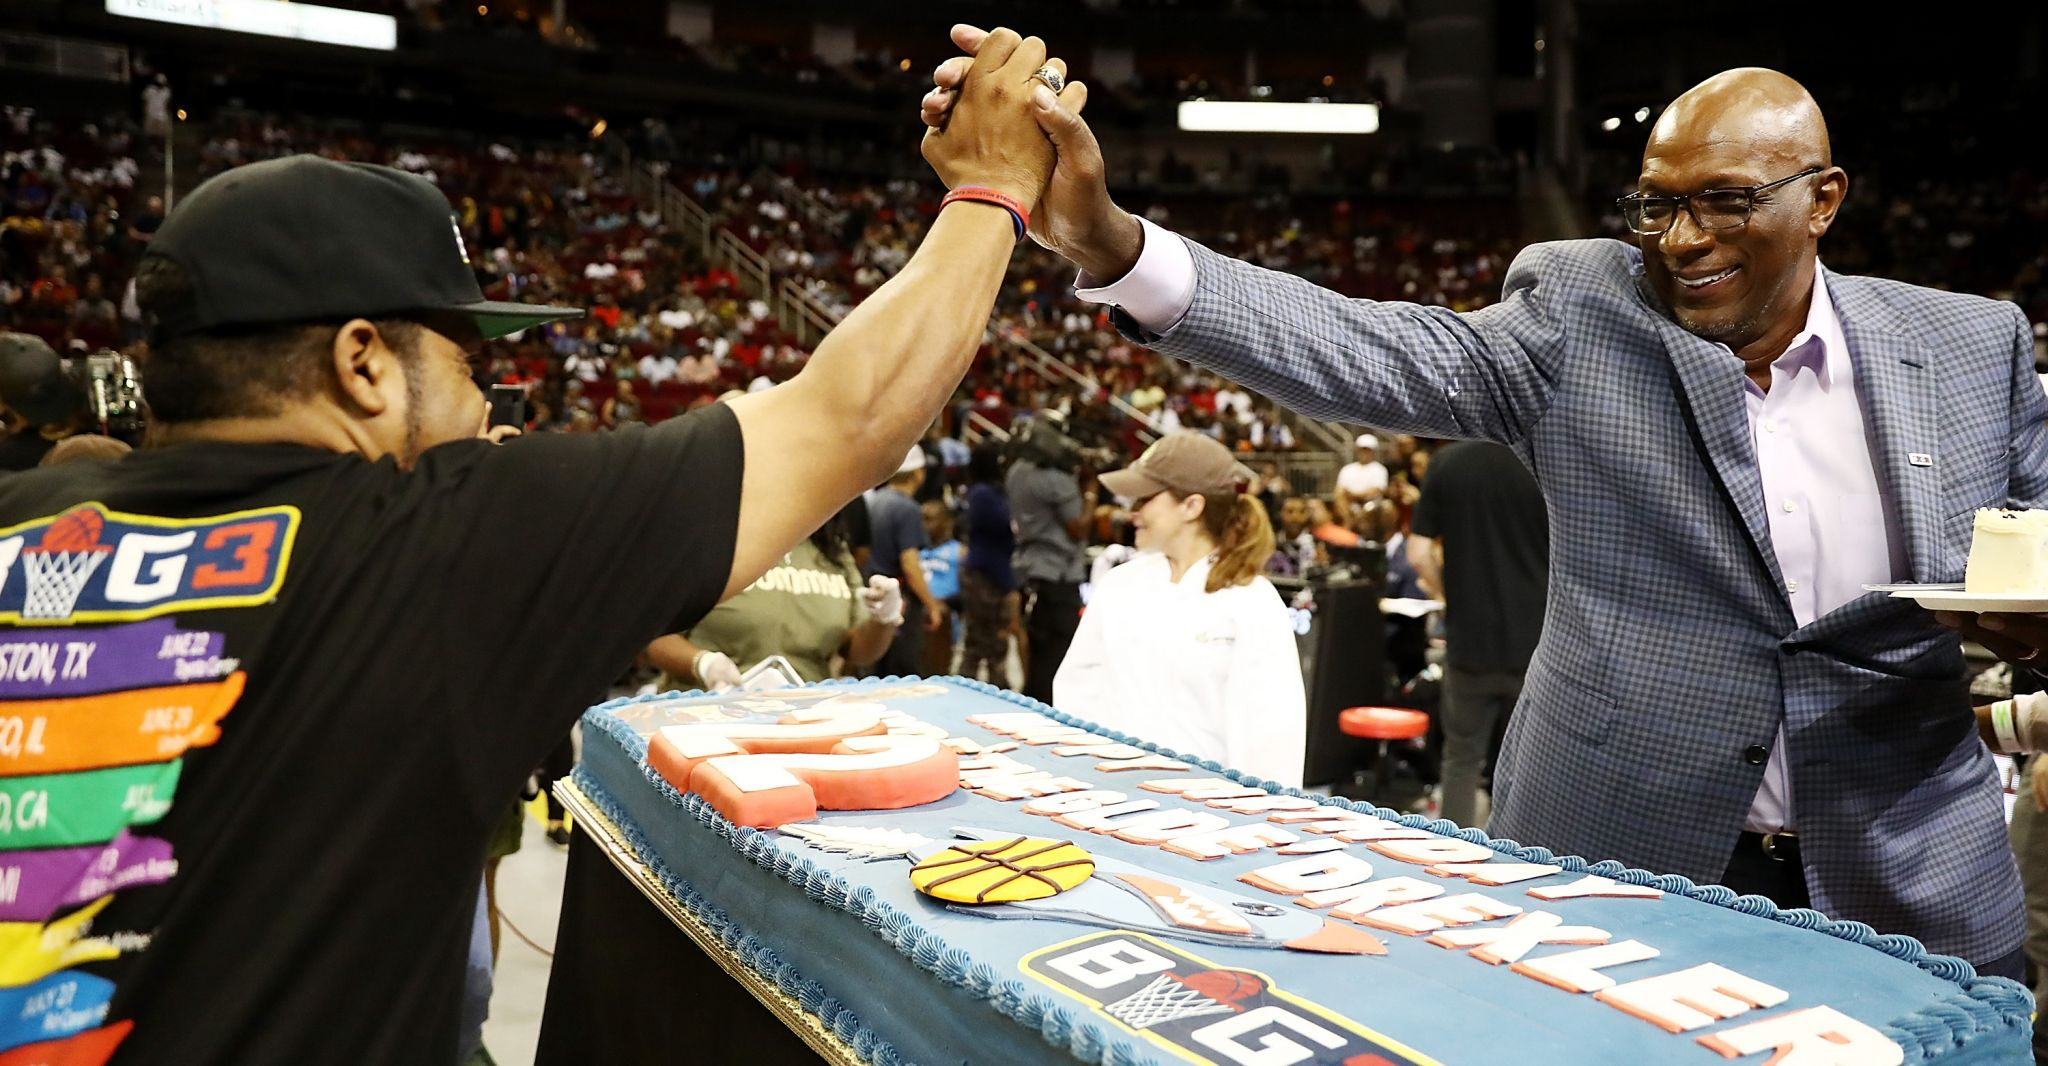 Ice Cube, Clyde Drexler Bring Big3 Vision To Toyota Center